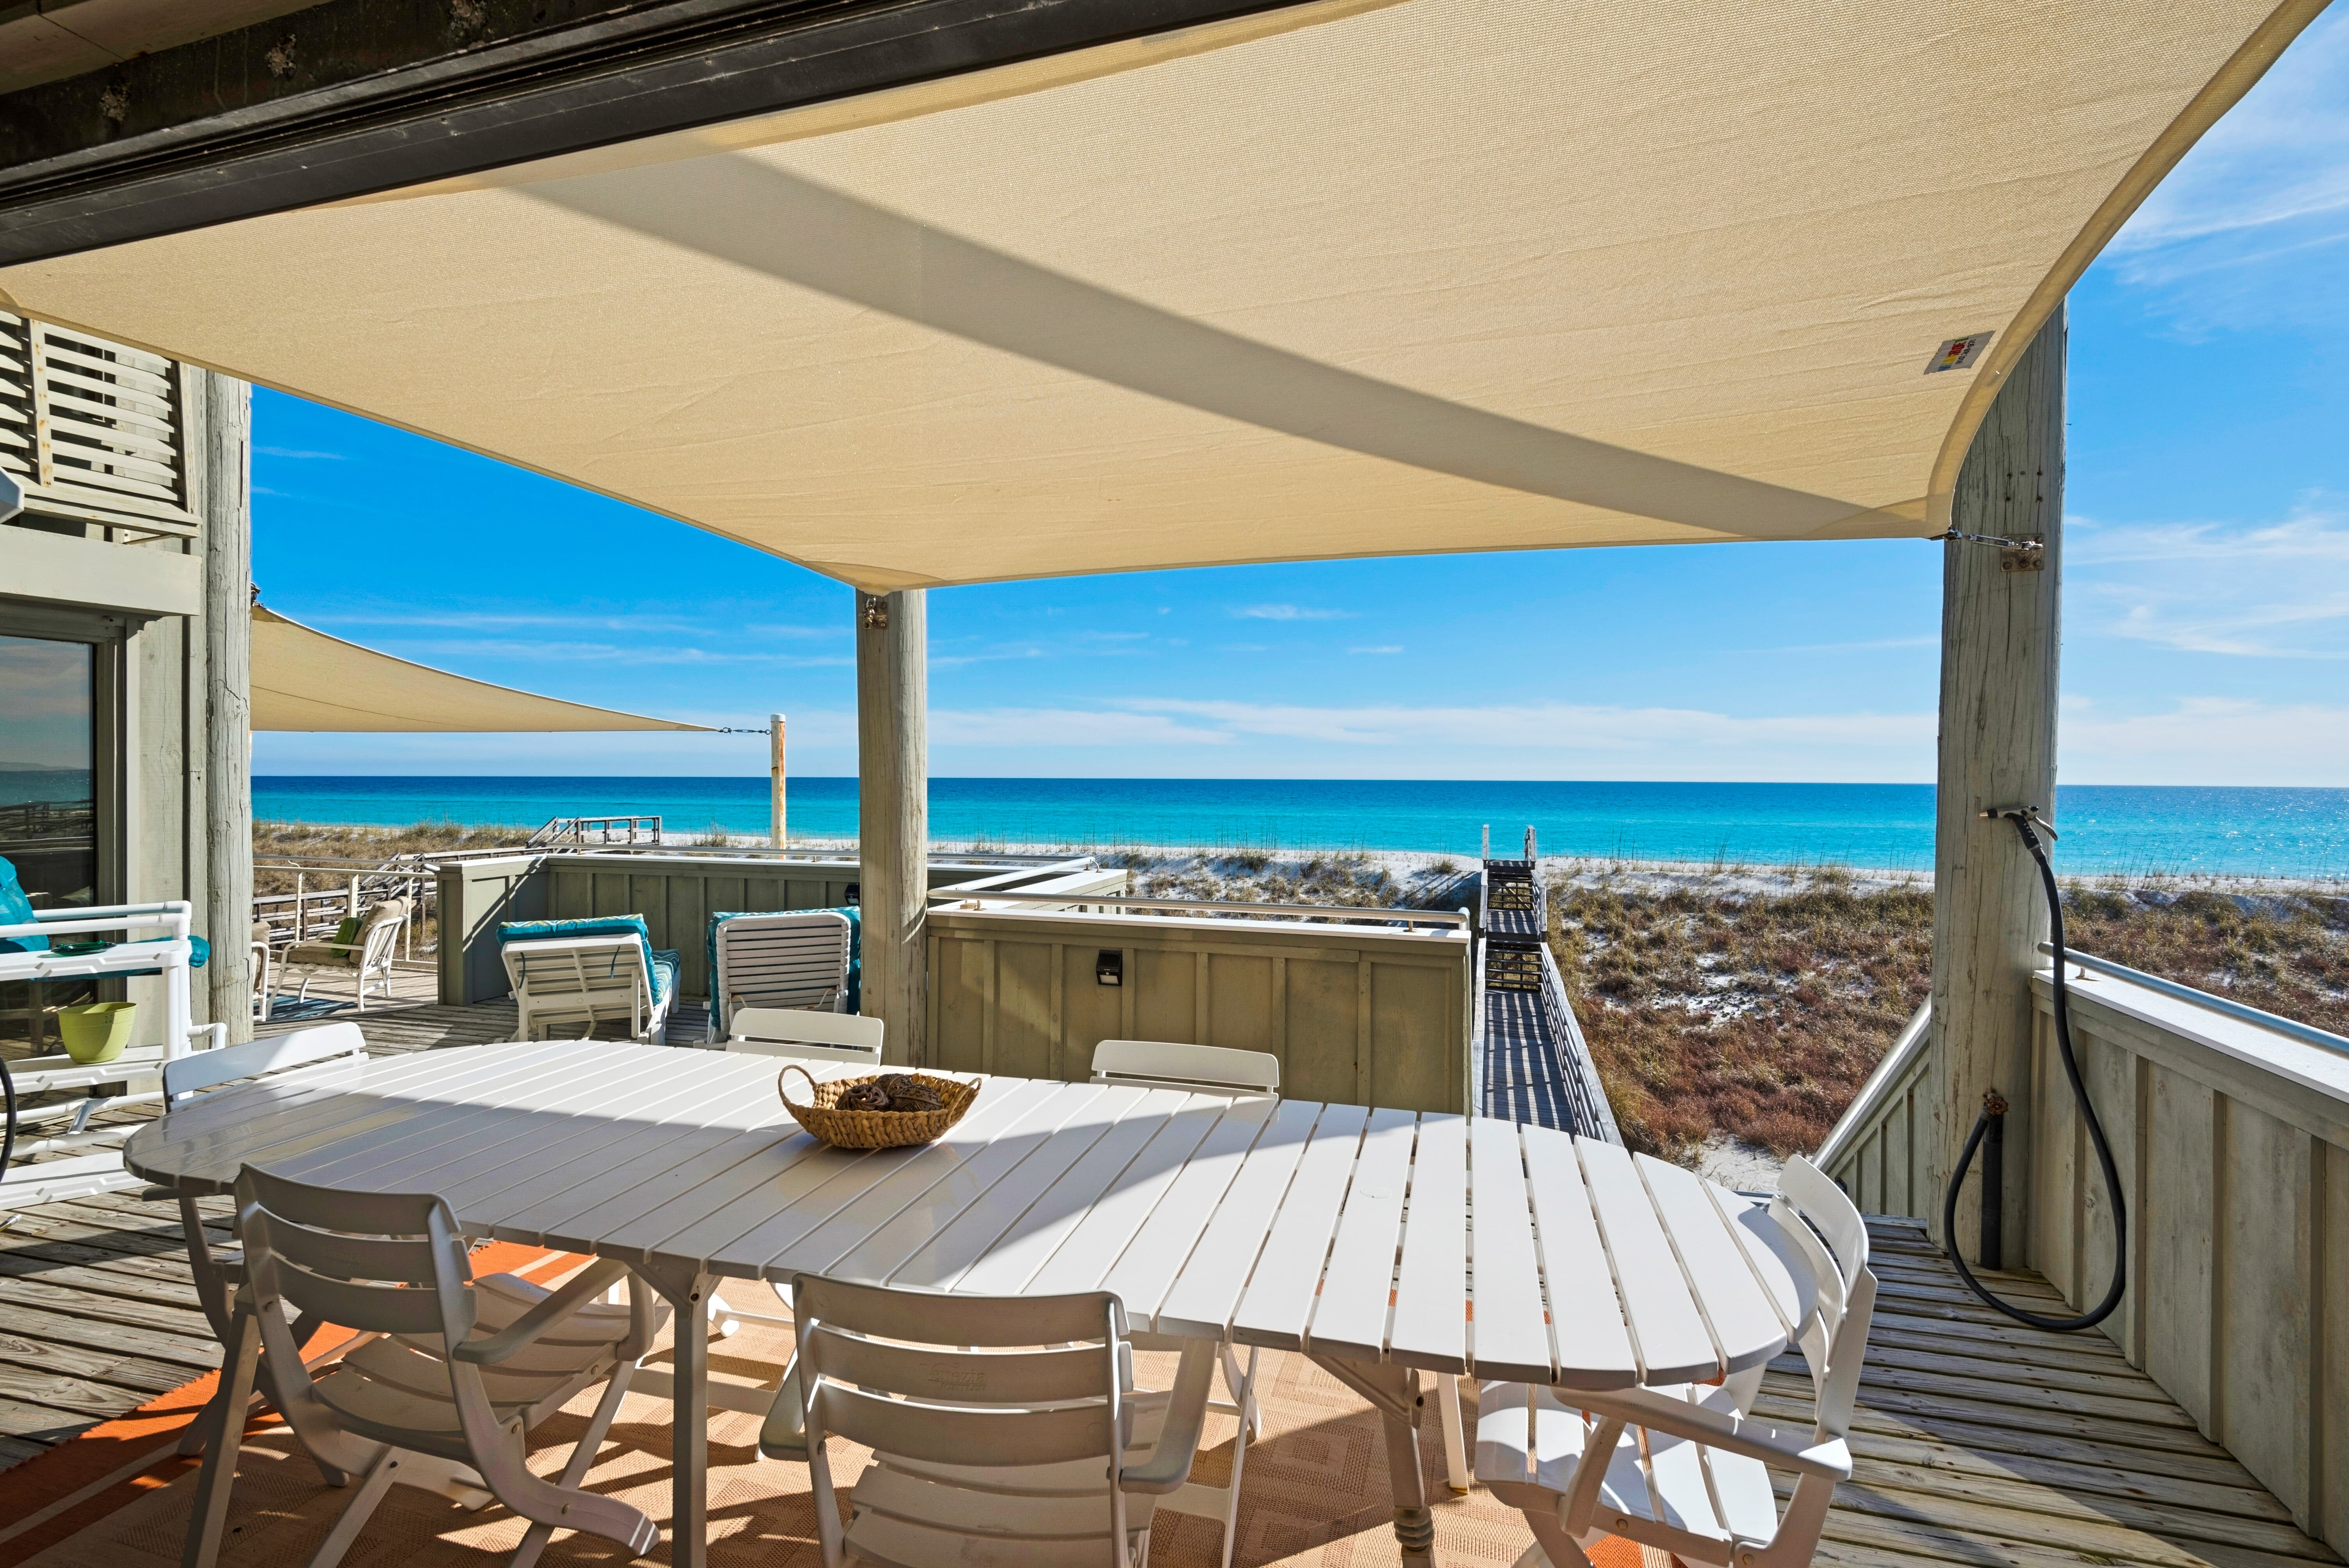 7527 Gulf Blvd - The Oyster House/Cottage rental in Navarre Beach House Rentals in Navarre Florida - #56